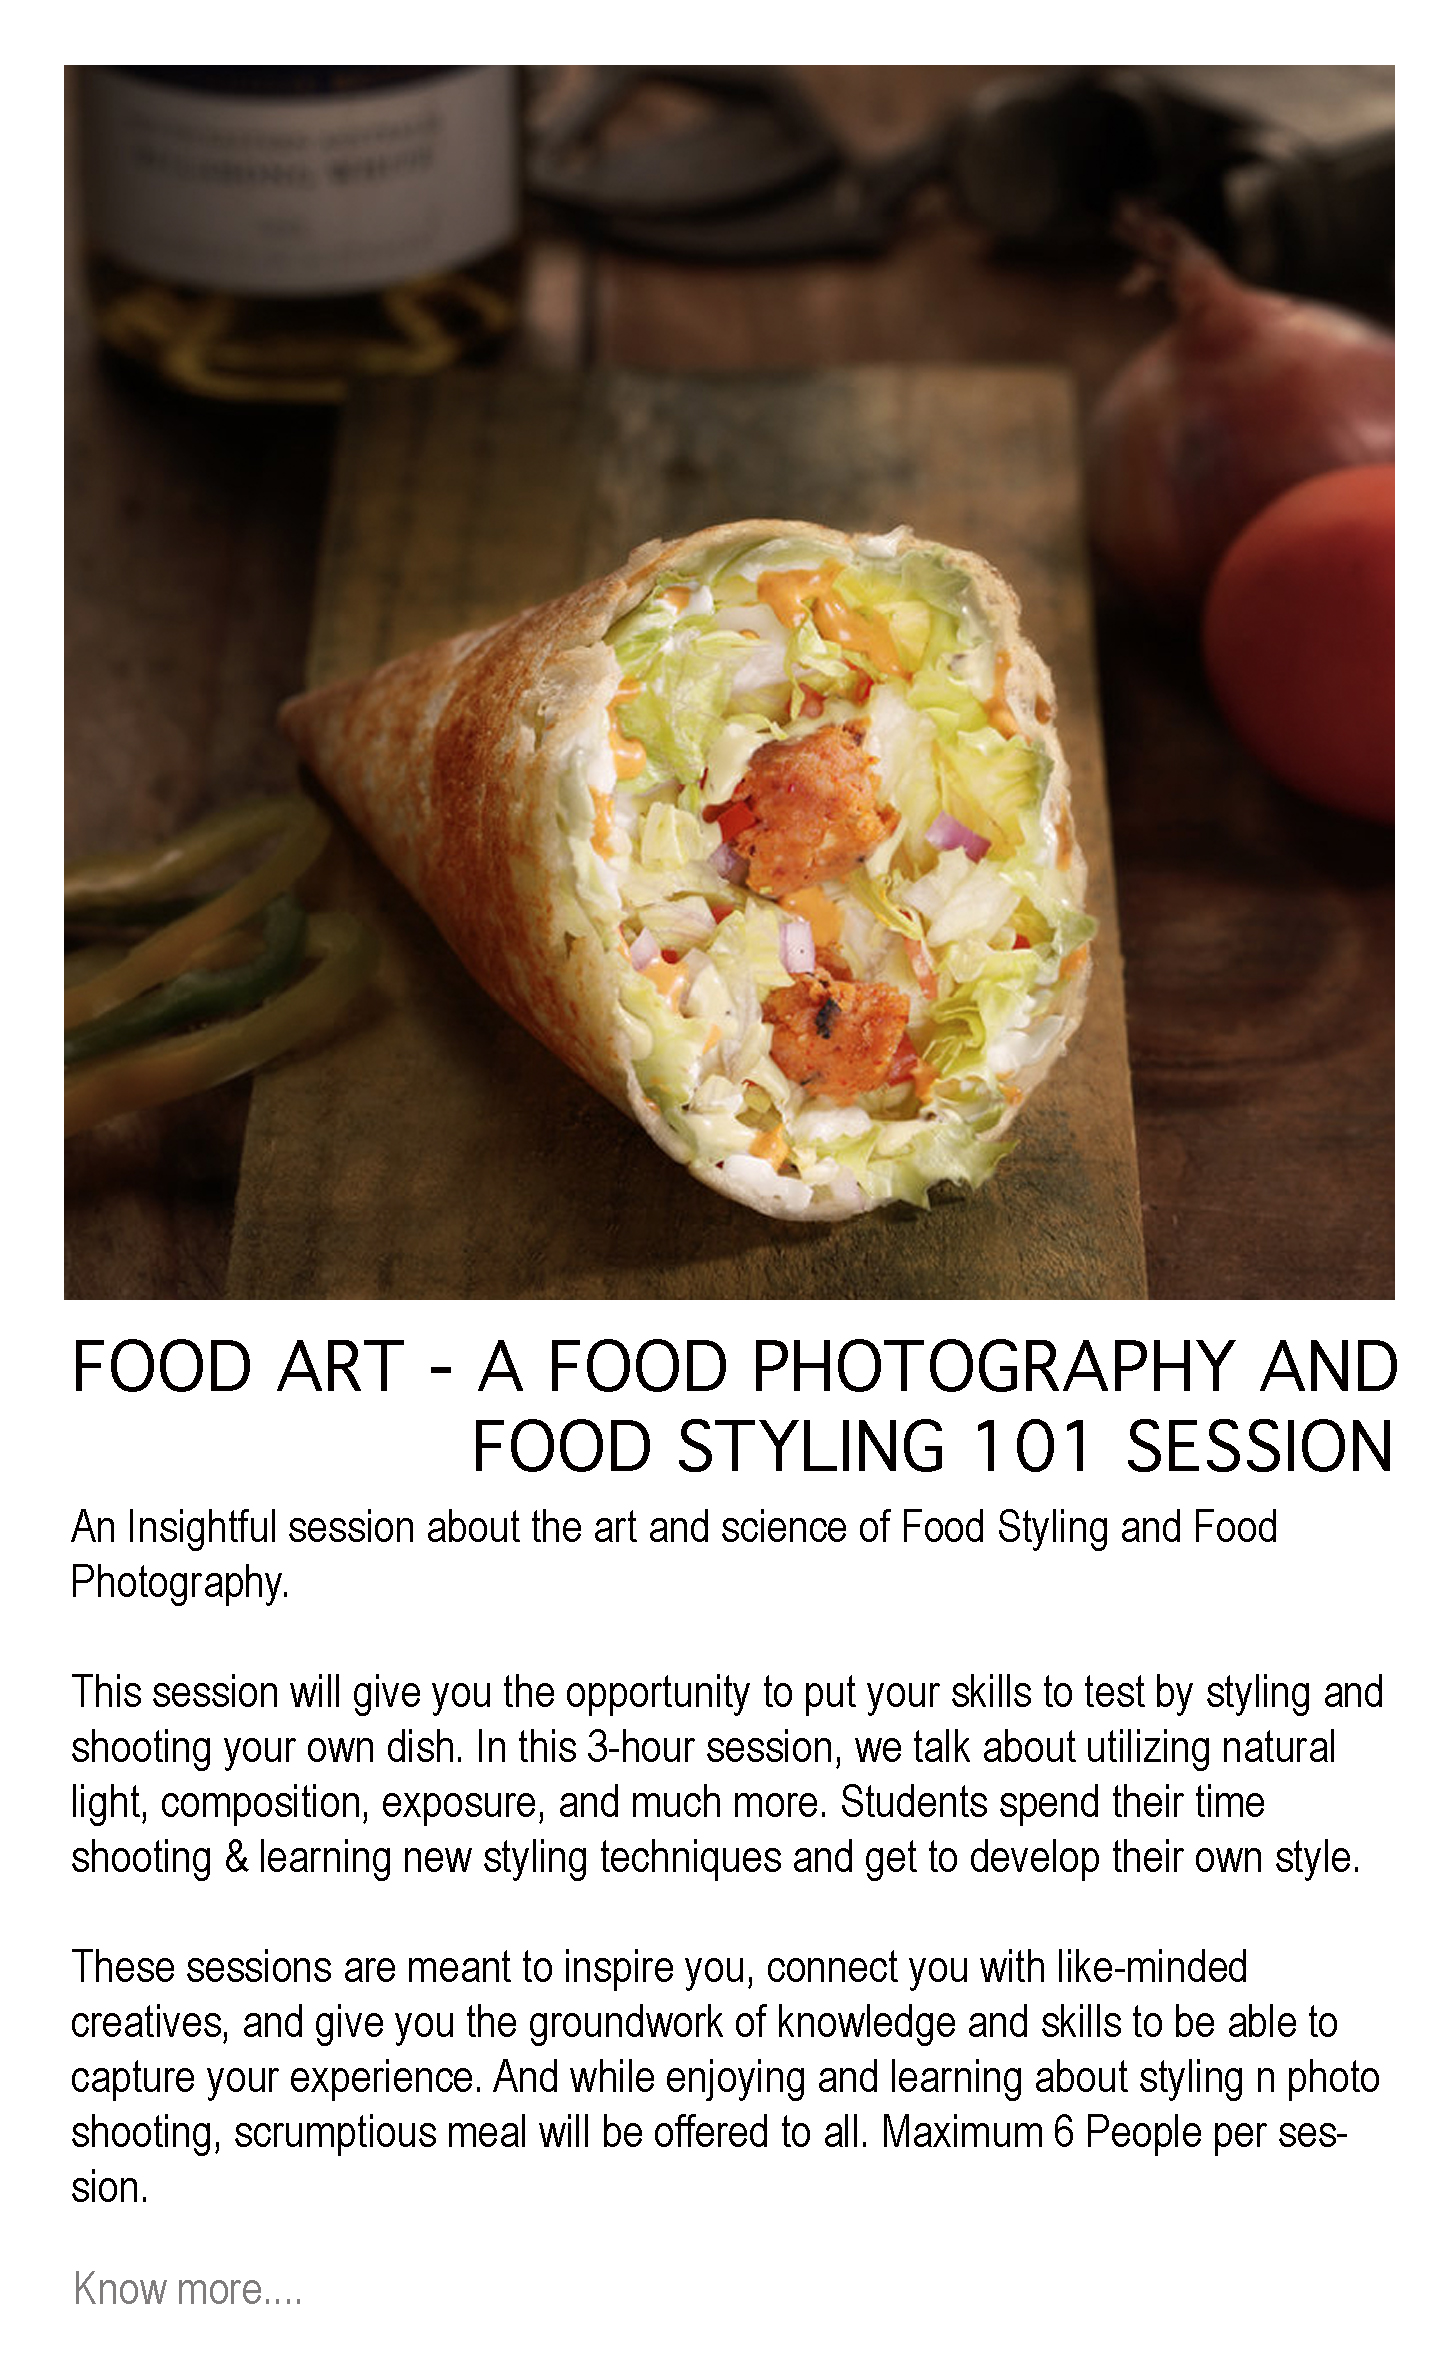 Food art photography work shop by sukil and khushboo.jpg